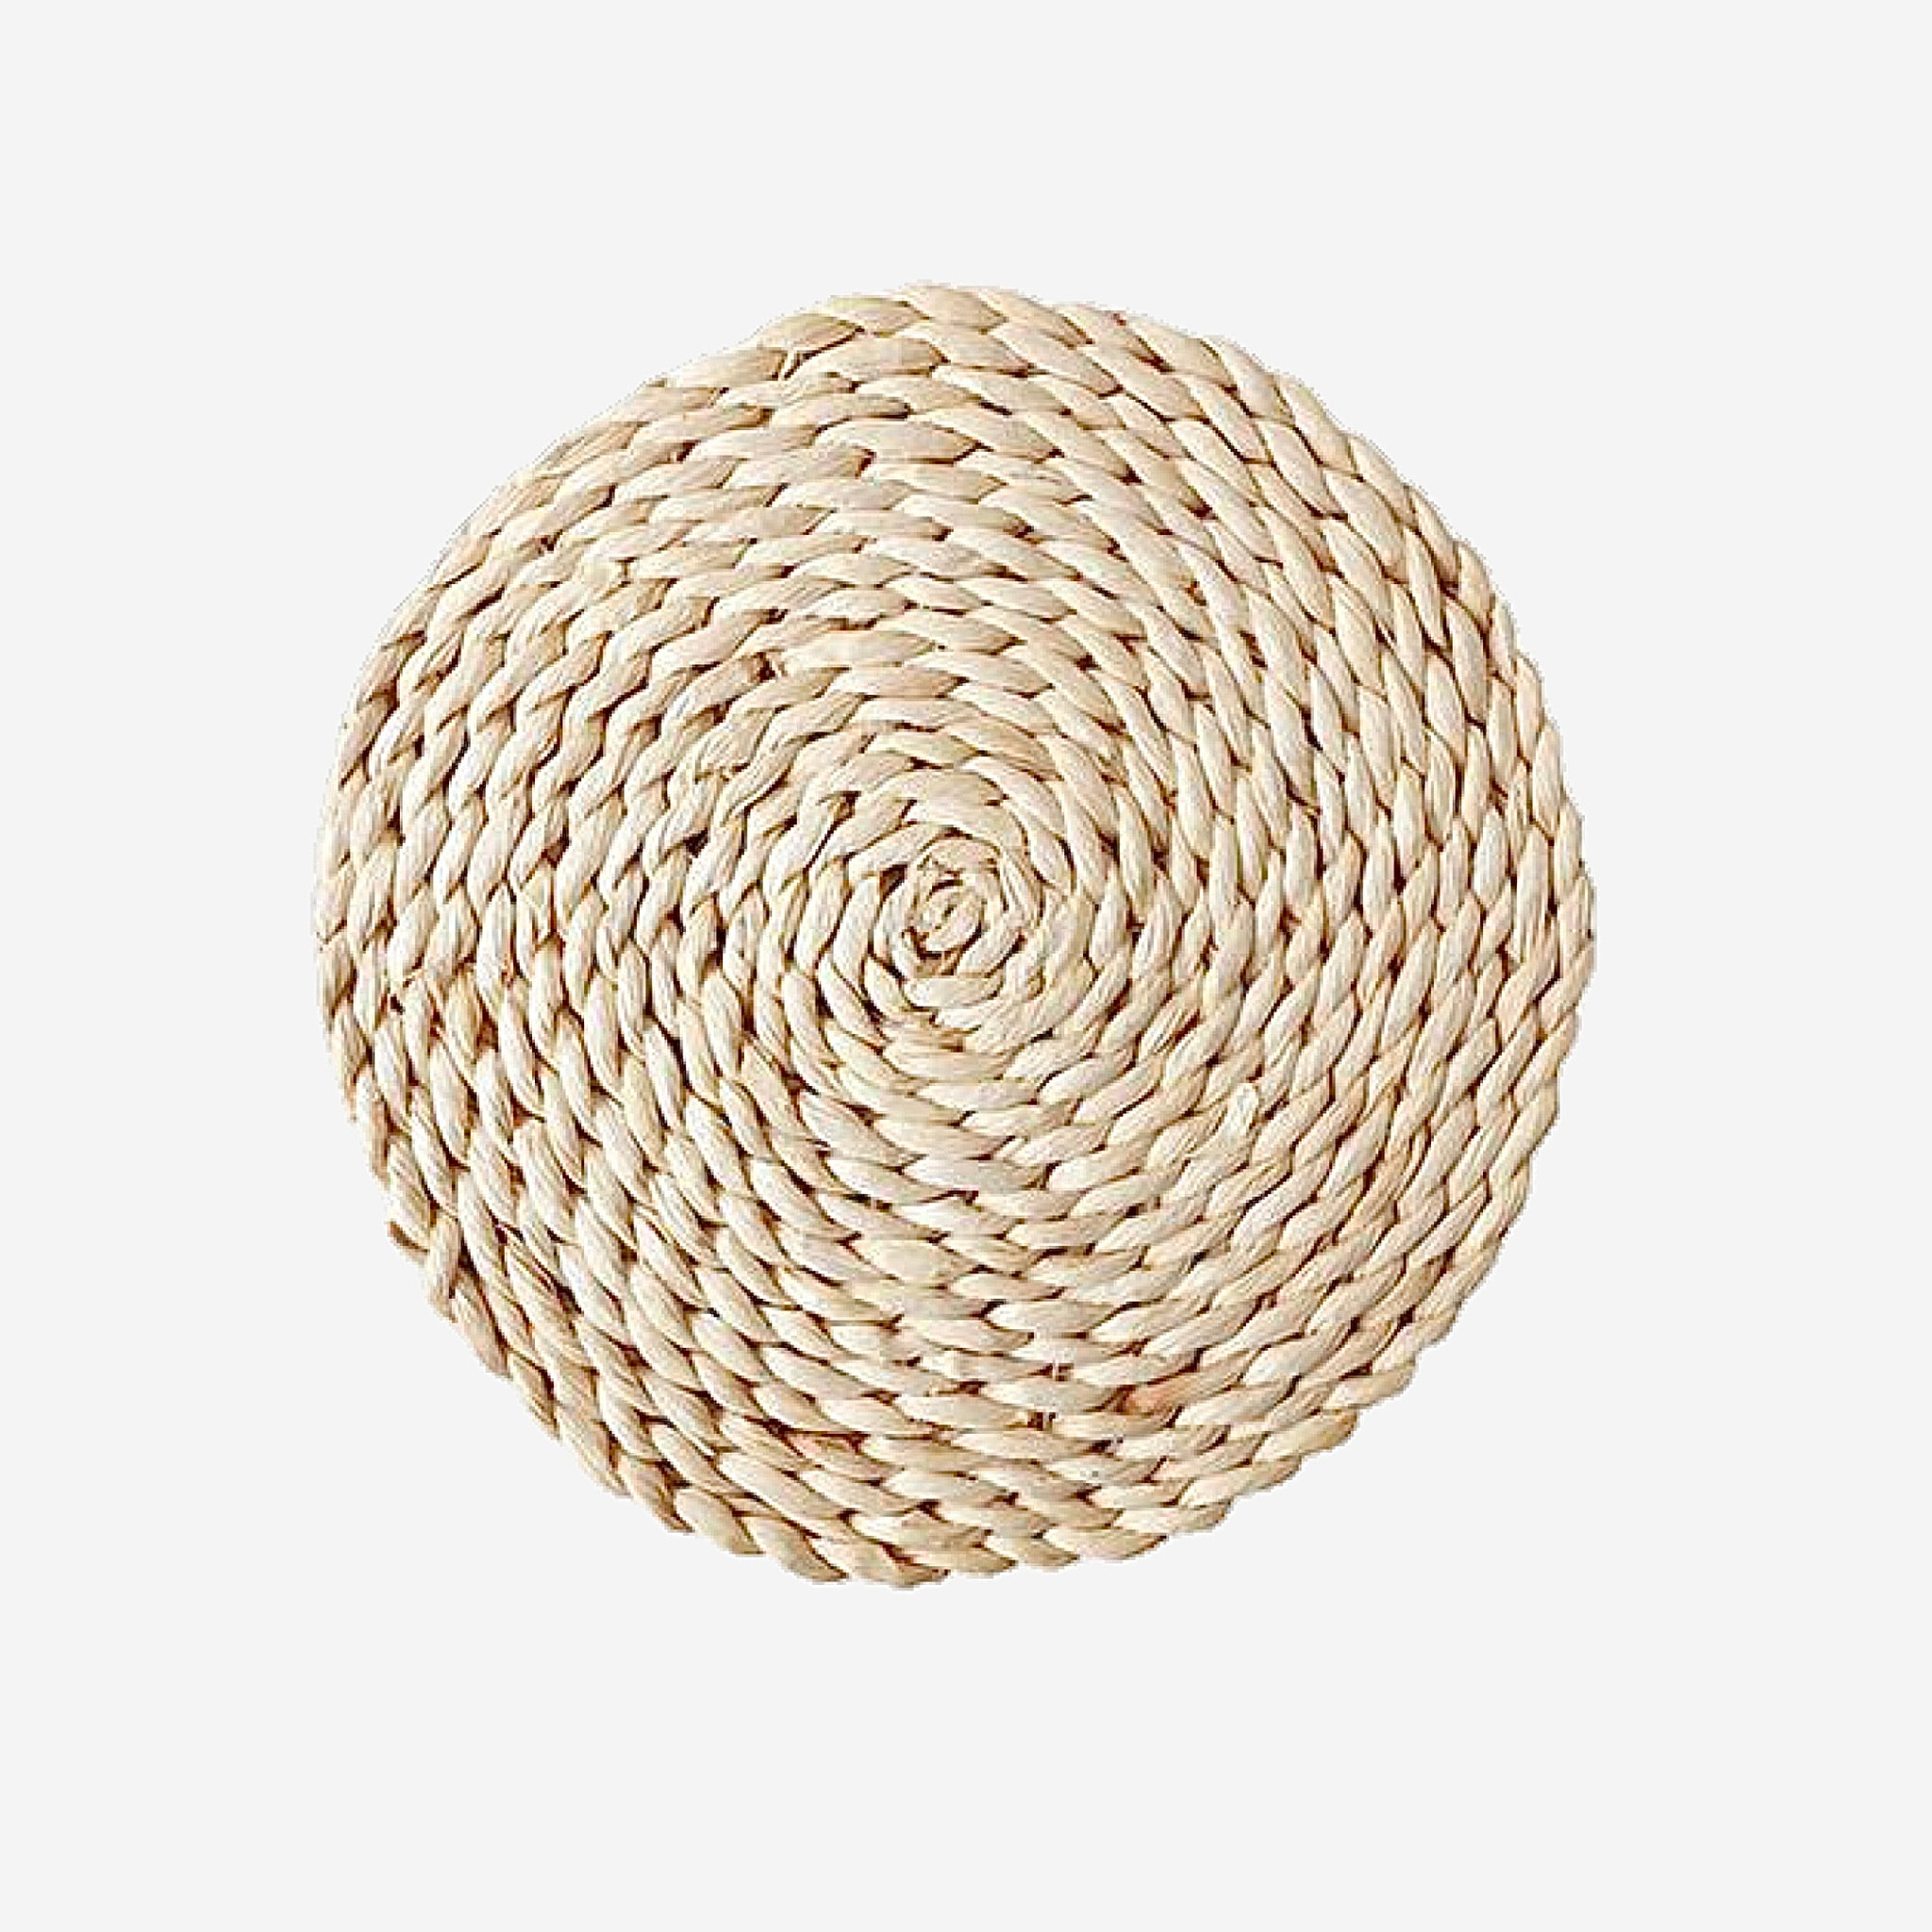 Rattan Placemats Straw Dining Table Mats Trending